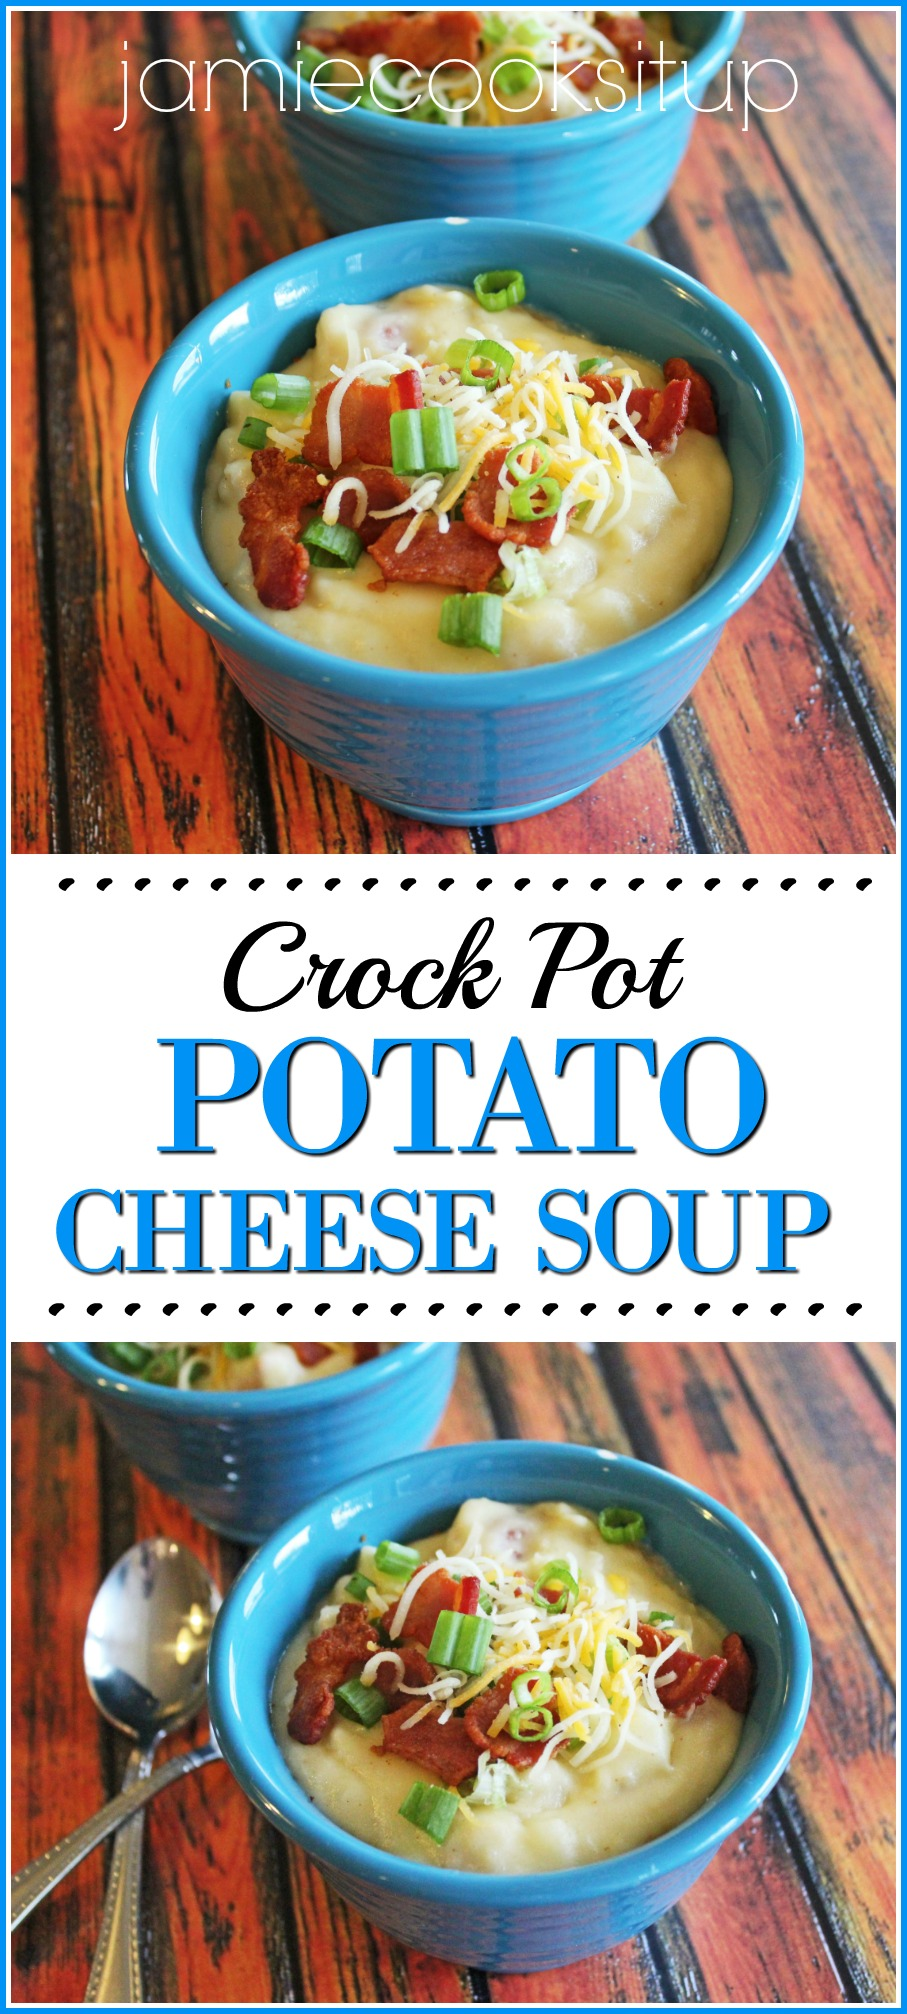 crock-pot-potato-cheese-soup-from-jamie-cooks-it-up